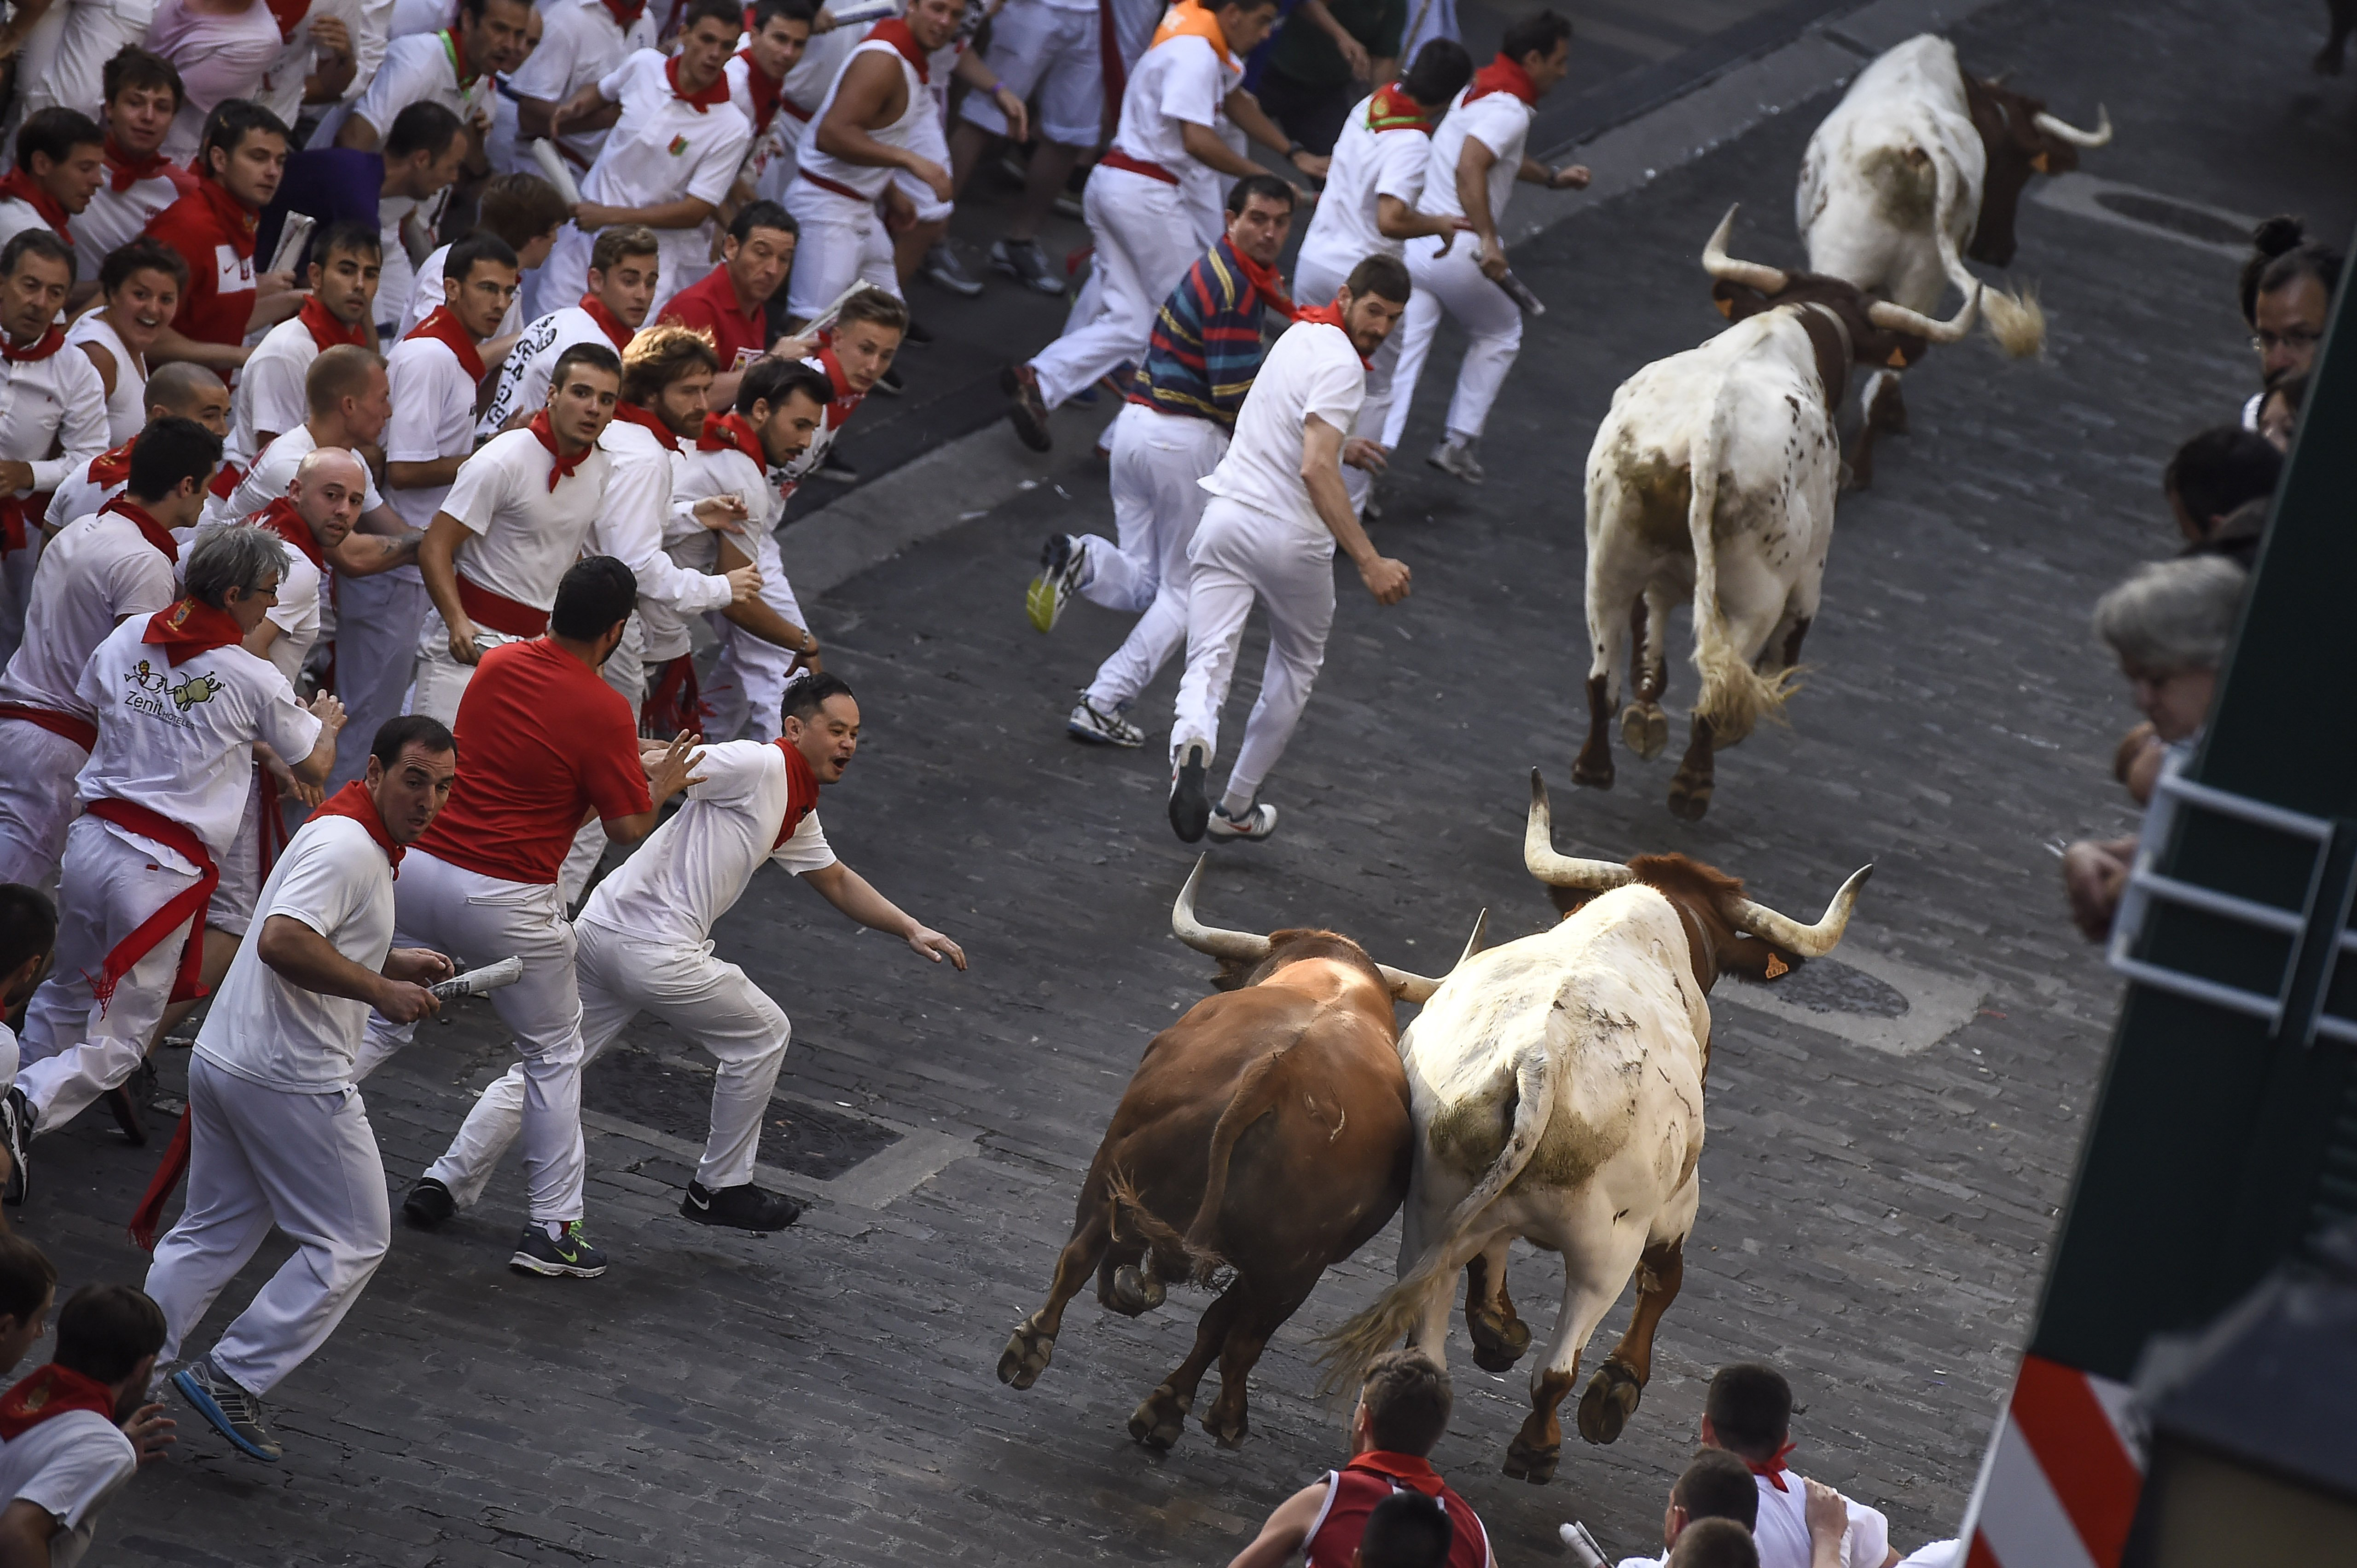 Runners on Santo Domingo way run beside Jandilla fighting bulls during the running of the bulls at the San Fermin Festival in Pamplona, Spain on July 7, 2015.